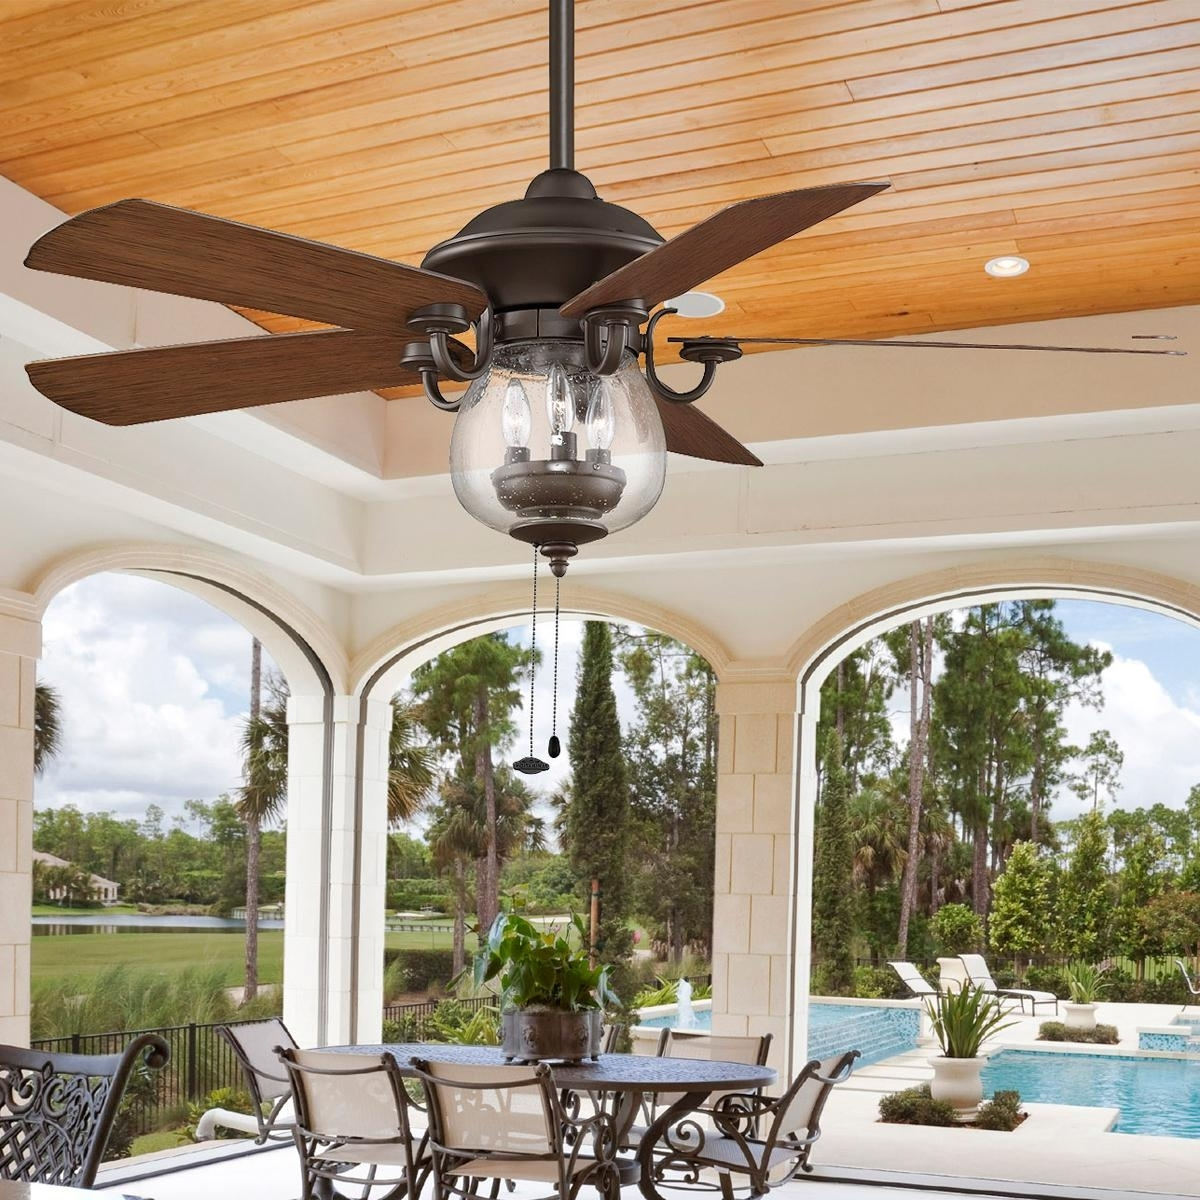 Outdoor Ceiling Fans With Lantern Light For Most Recently Released Ceiling Fan: Recomended Exterior Ceiling Fans Ideas Outdoor Fans (View 13 of 20)